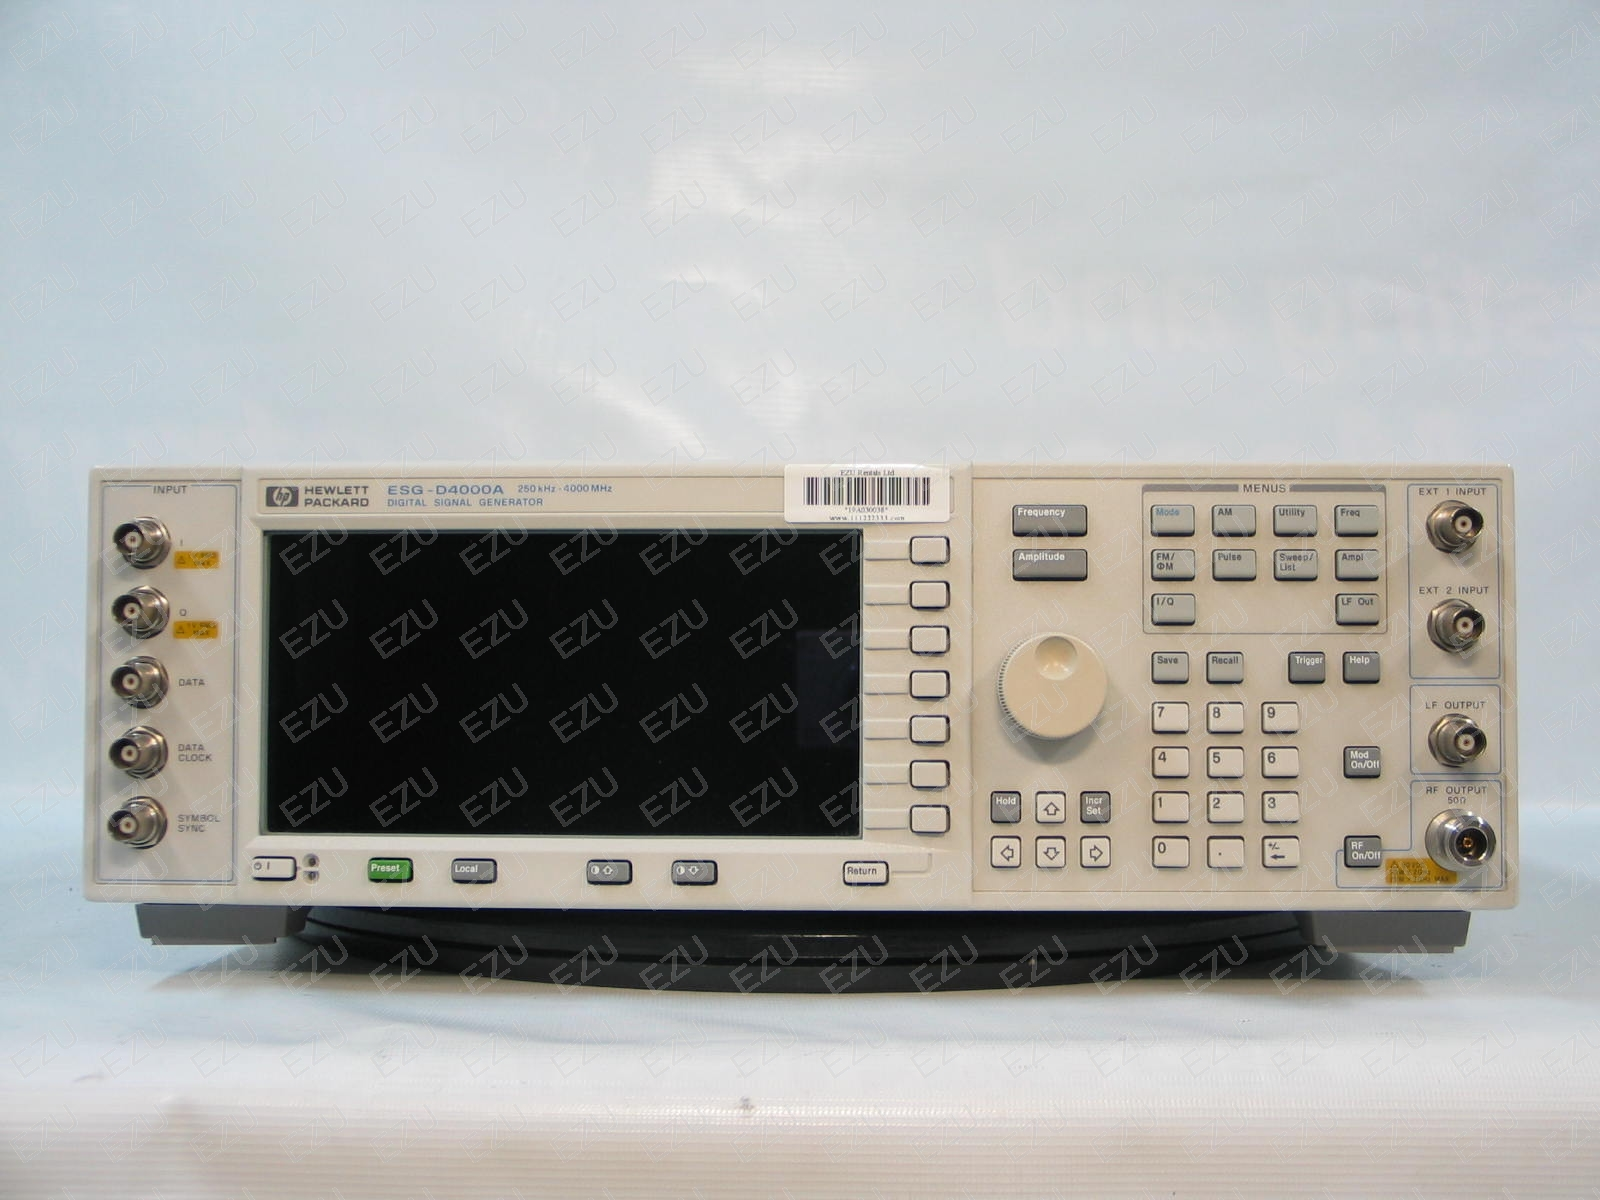 Agilent Esg D4000a Photo Signal Generator 250khz To 4ghz Digital Mod Acts As An Output Of The Circuit Click View Fullsize Picture